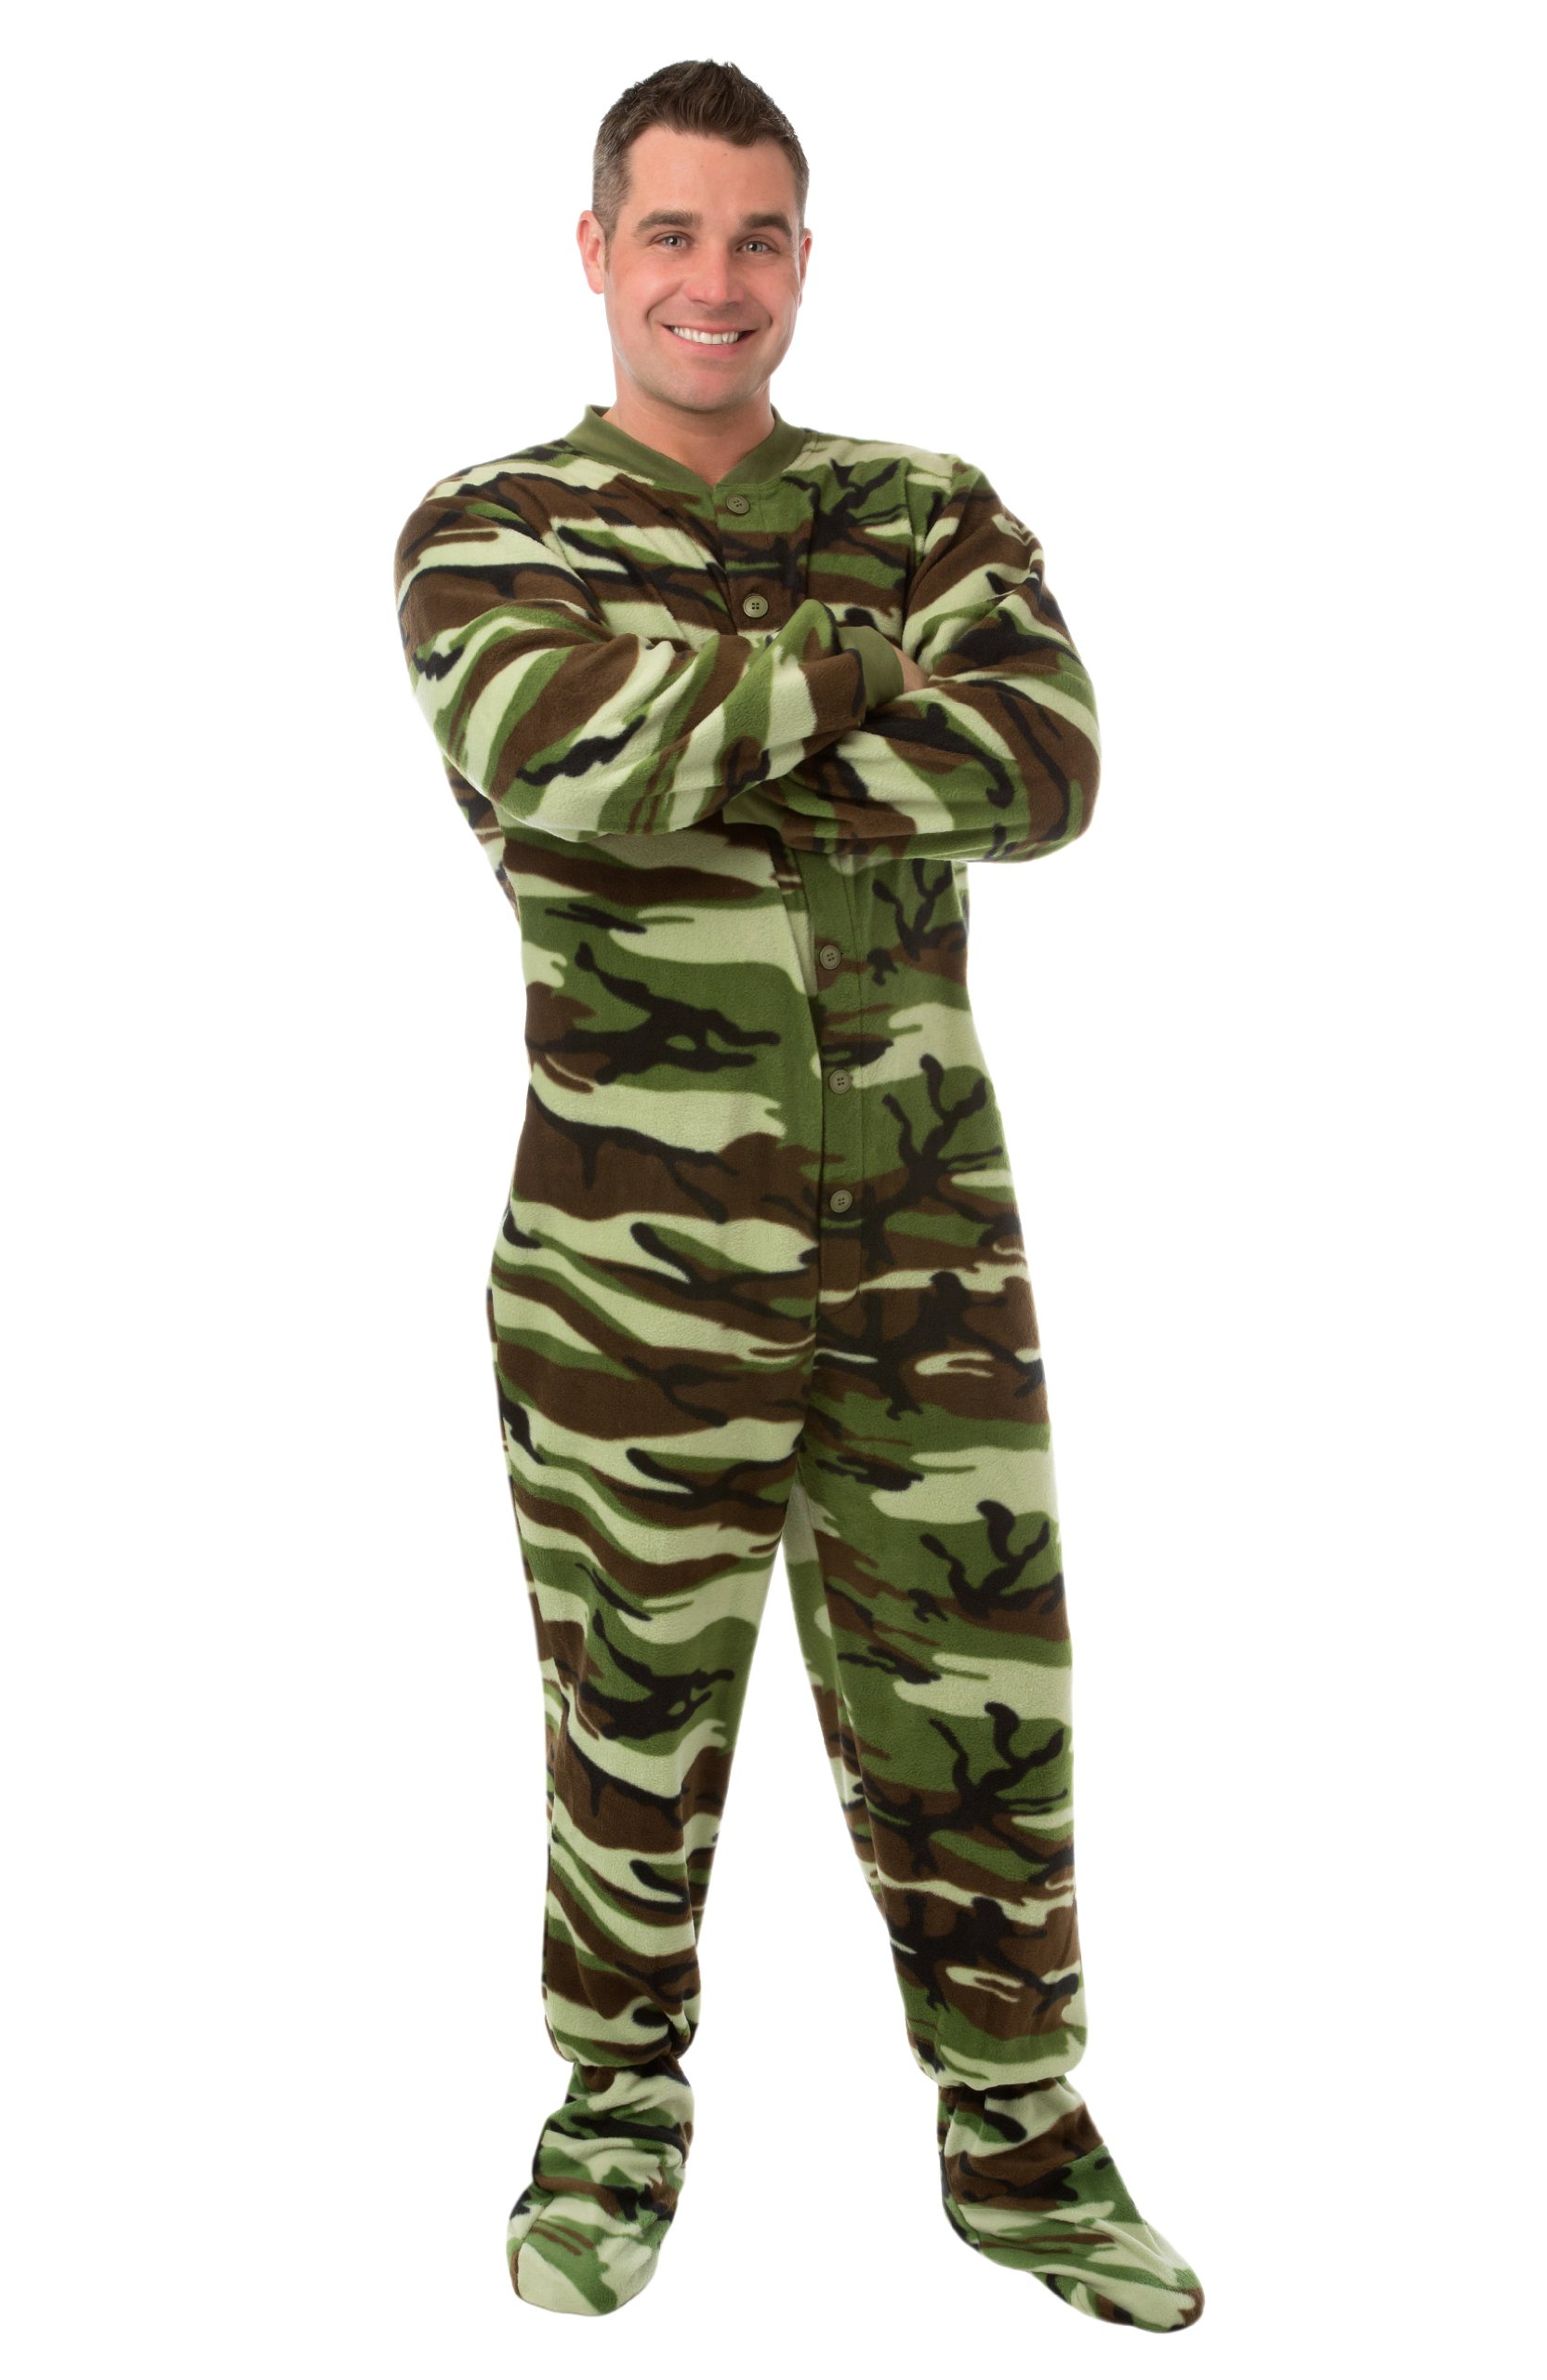 Big Feet Pjs Green Camo Micro-polar Fleece Adult Footed Pajamas with Drop Seat